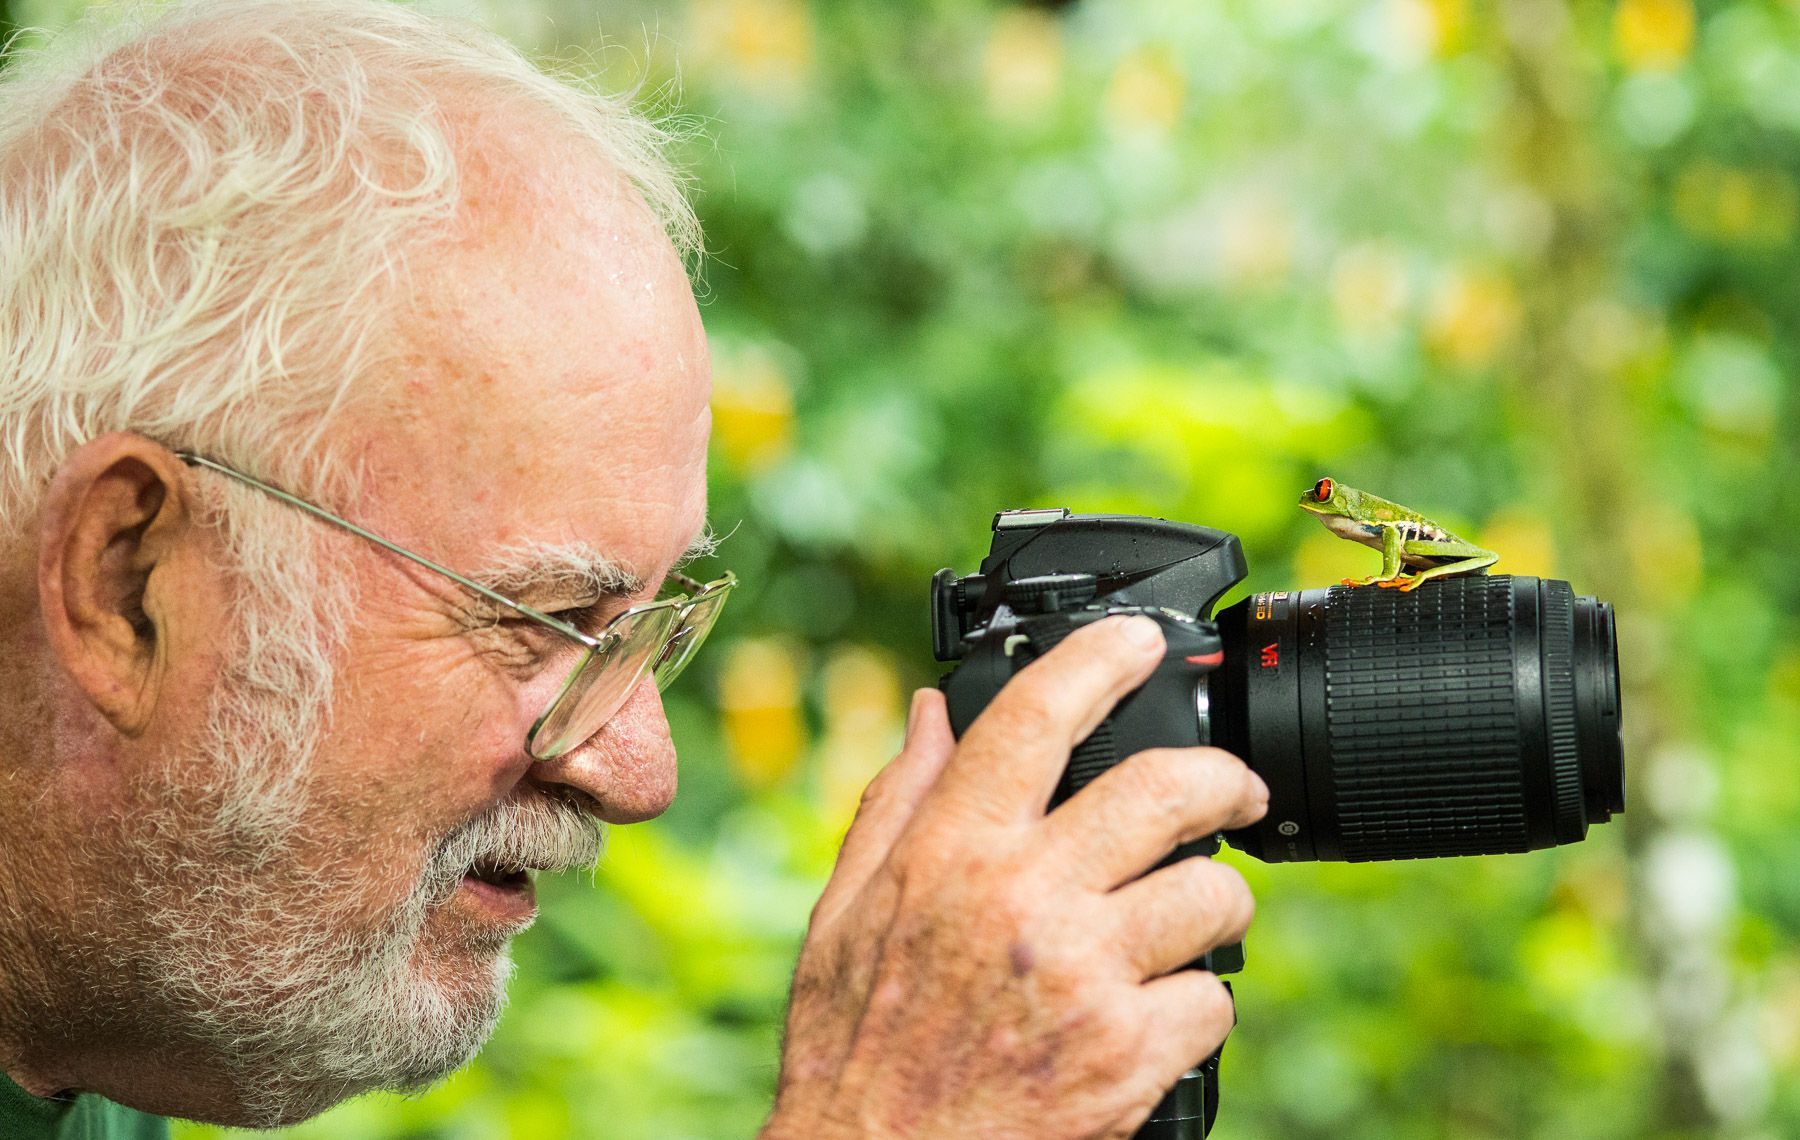 Red-eyed Tree Frog (Agalychnis callidryas) Checks out Photographer